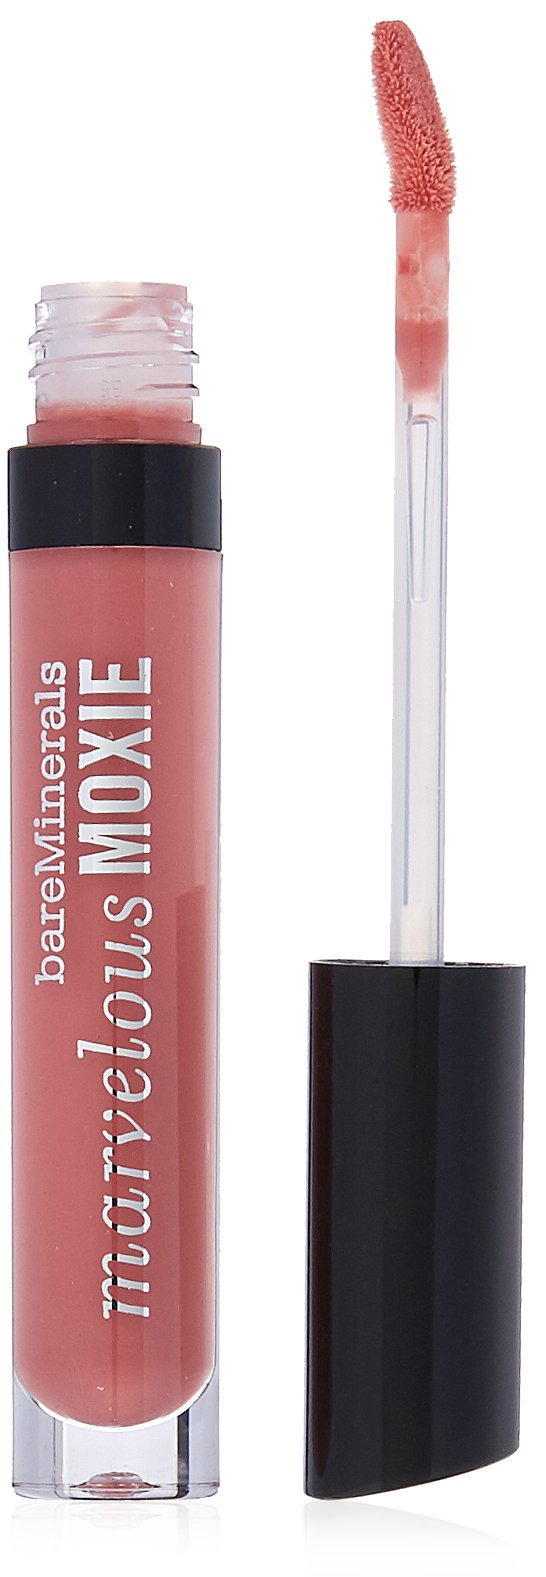 bareMinerals Marvelous Moxie Lip Gloss, Rebel, 0.15 Fluid Ounce